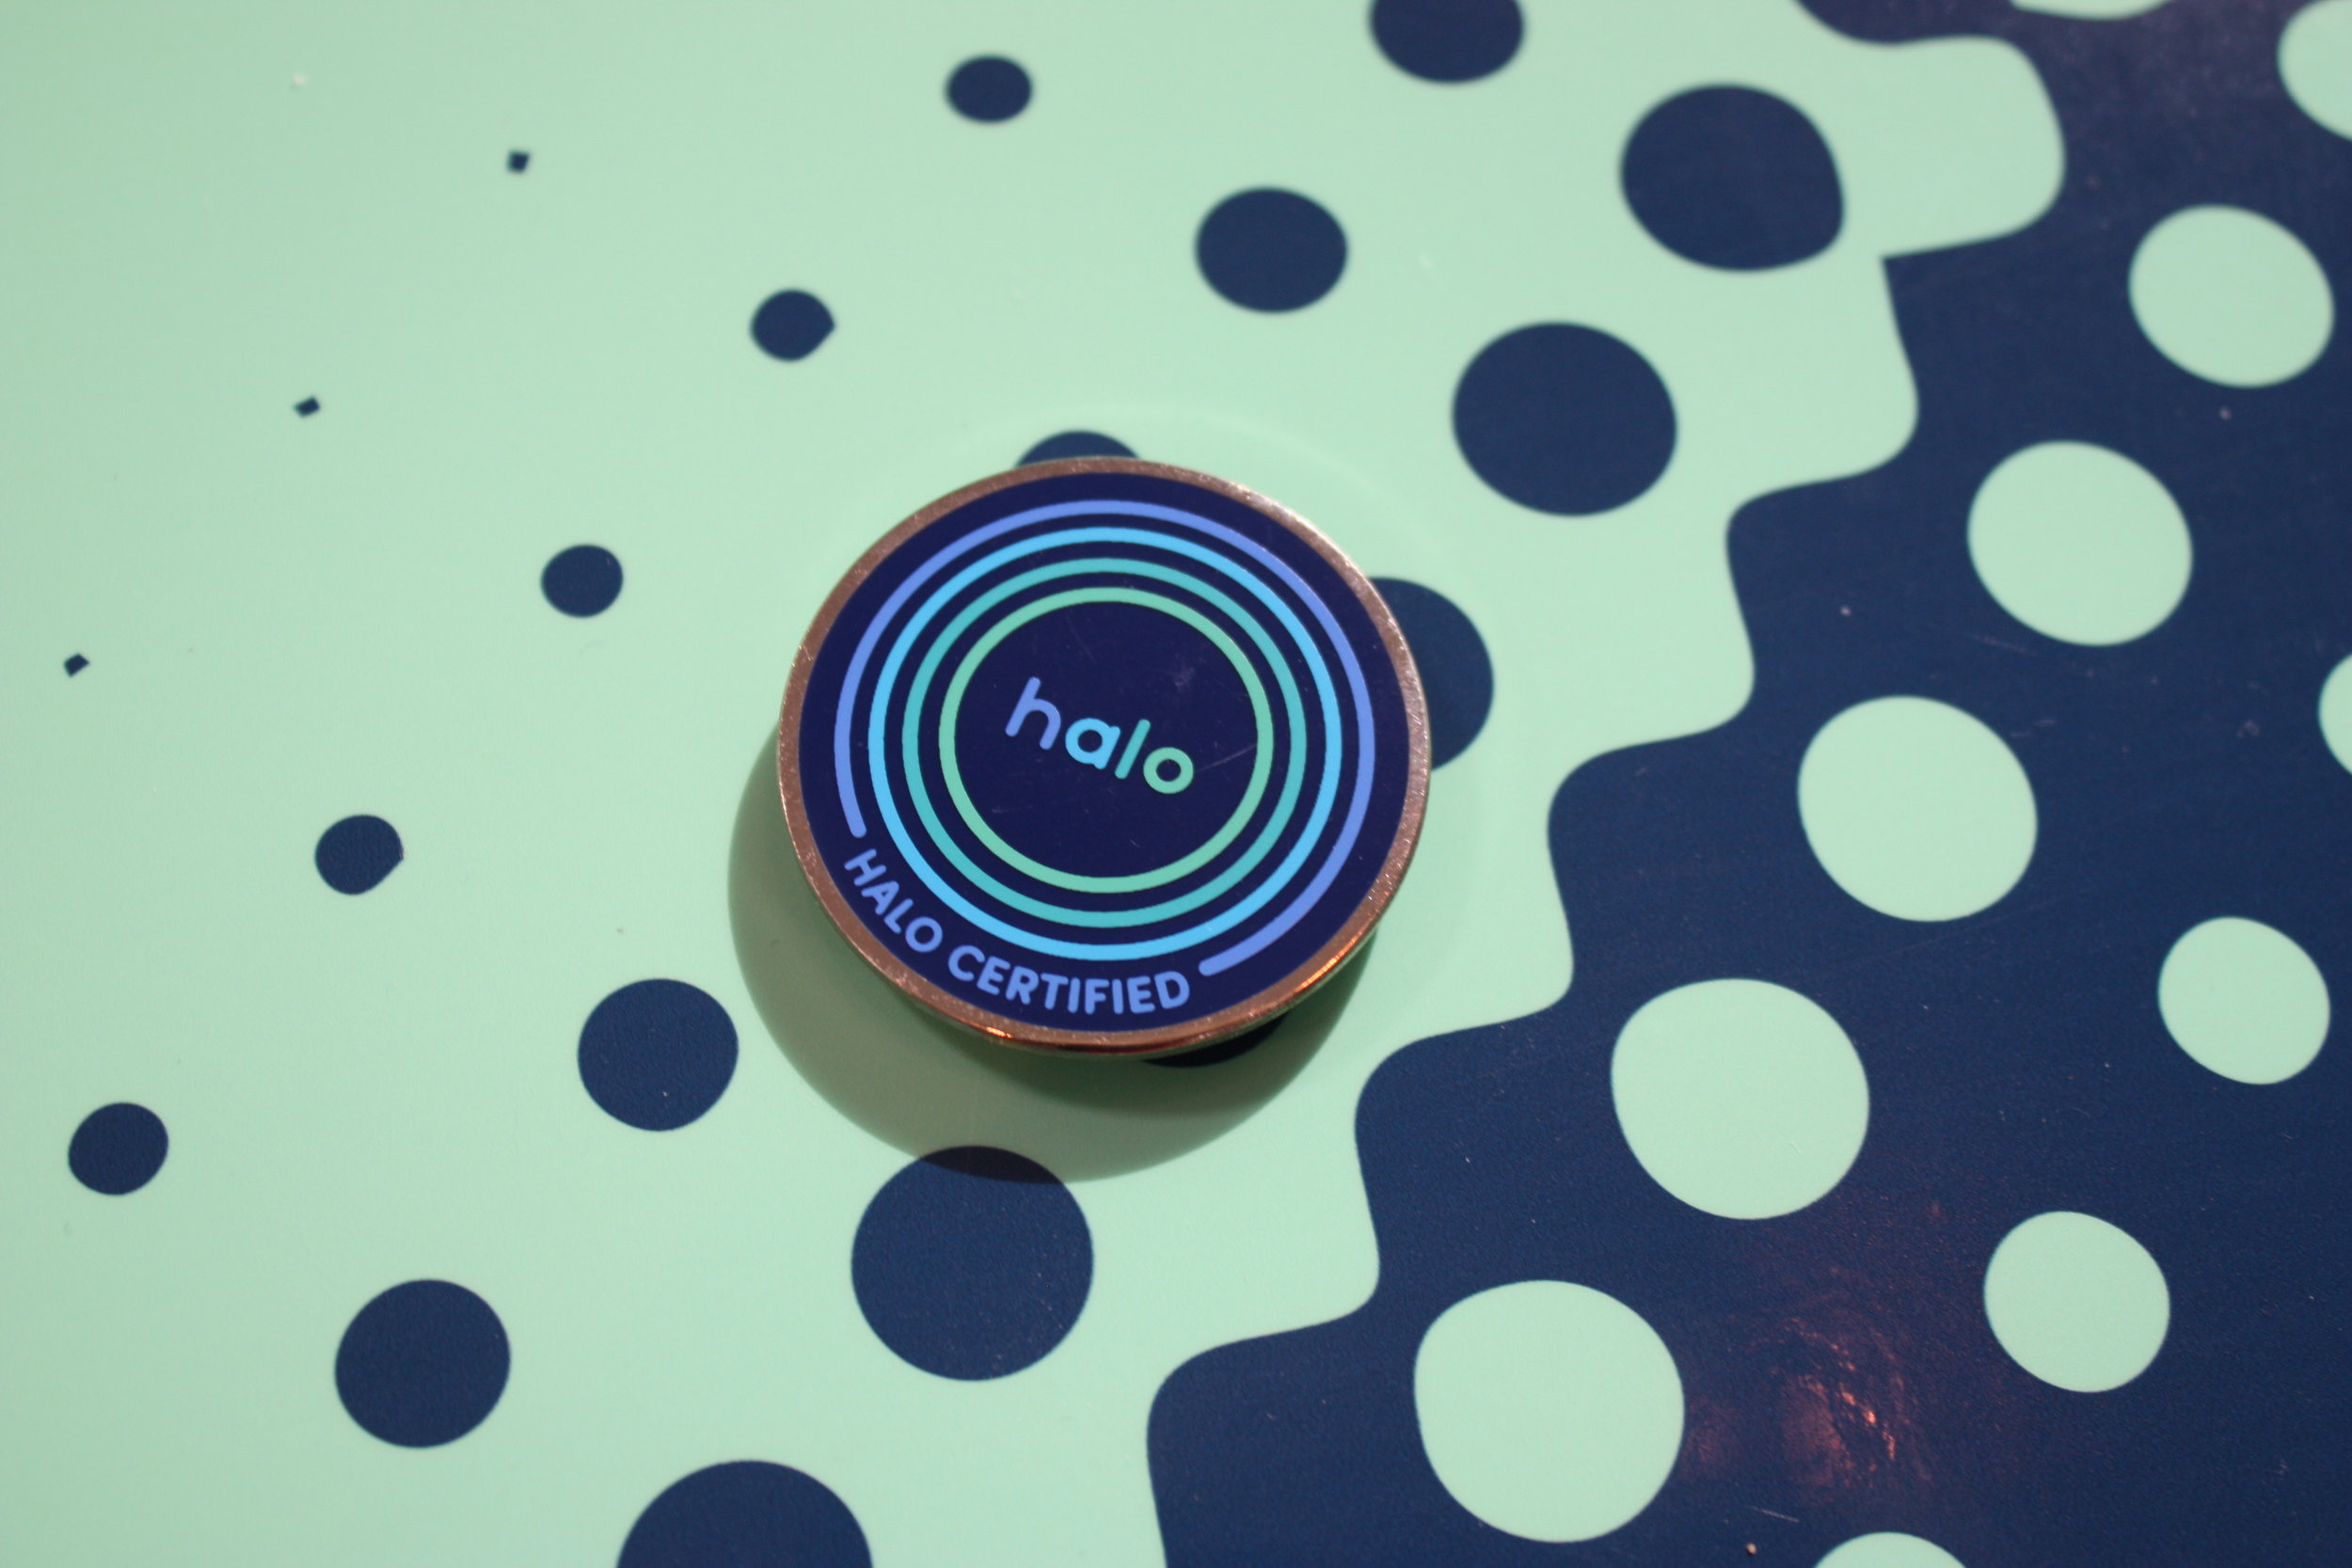 pins for the Halo-trained staff,